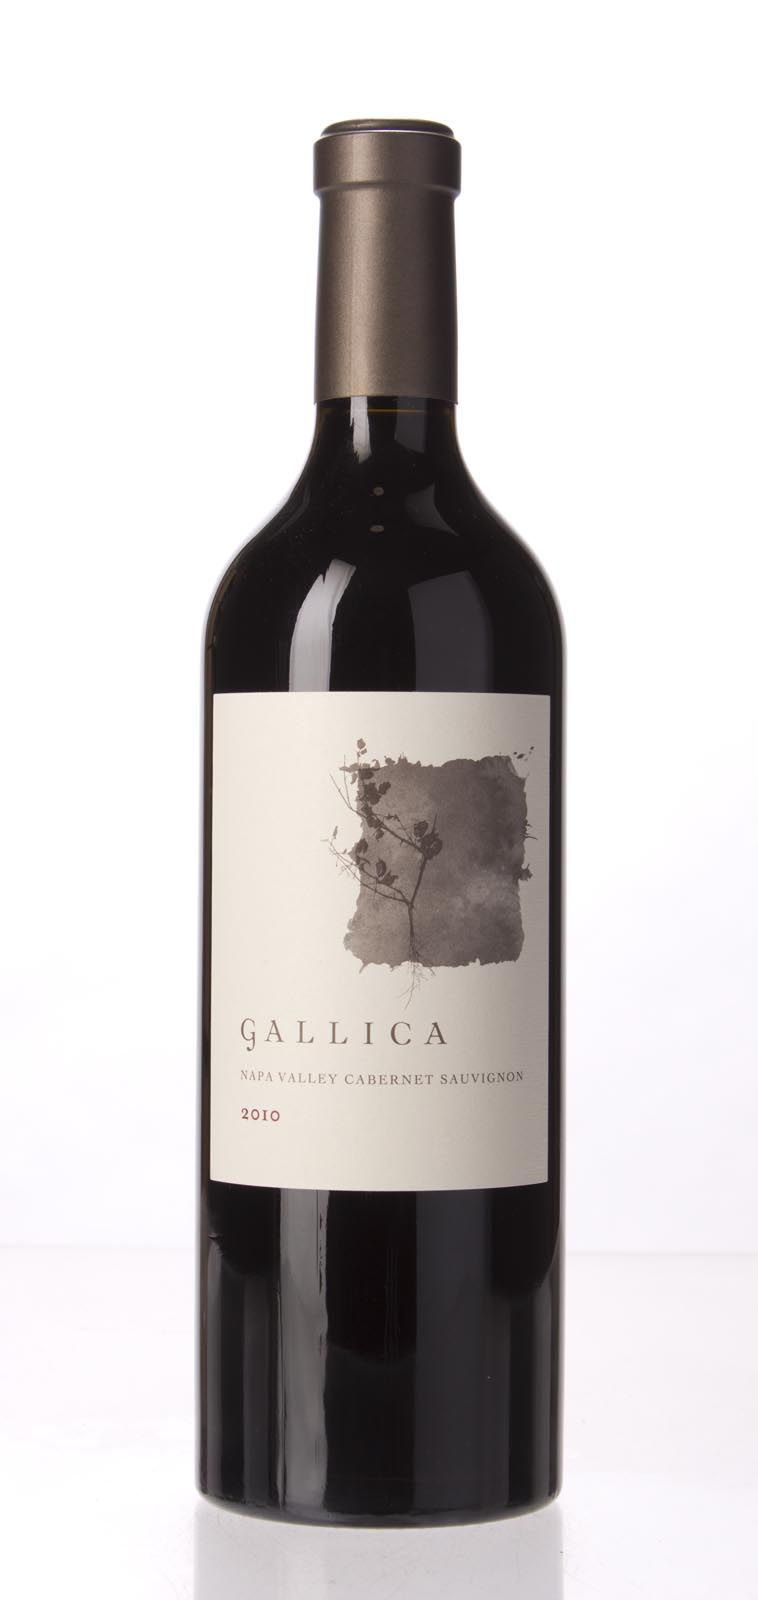 Gallica Cabernet Sauvignon Napa Valley 2010, 750mL (AG94, WA95, ST94+, WS94) from The BPW - Merchants of rare and fine wines.